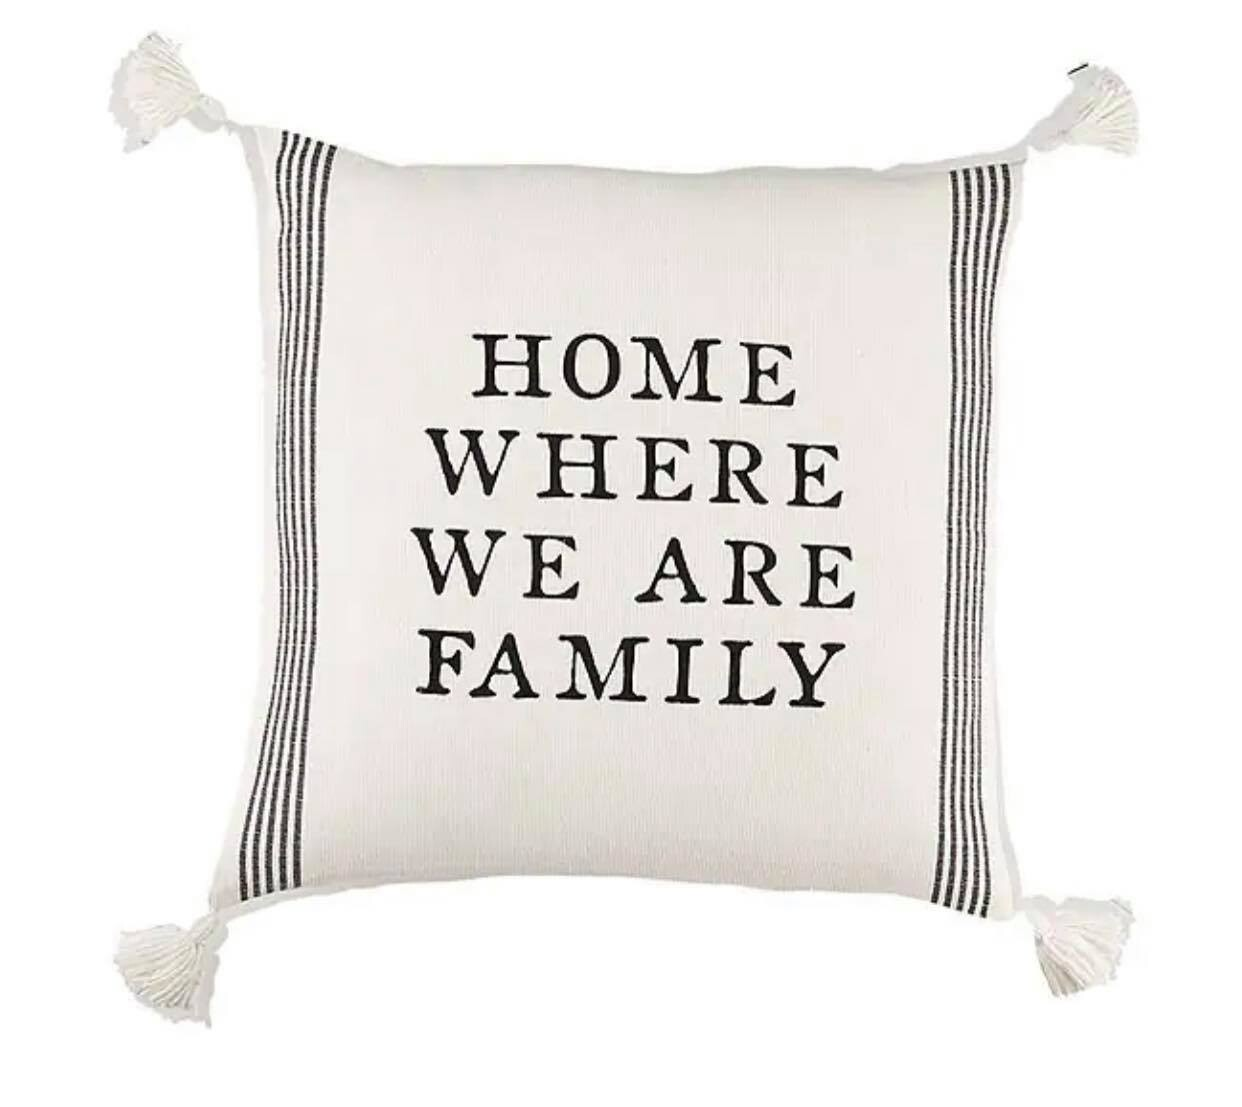 Home Where We Are Family Pillow